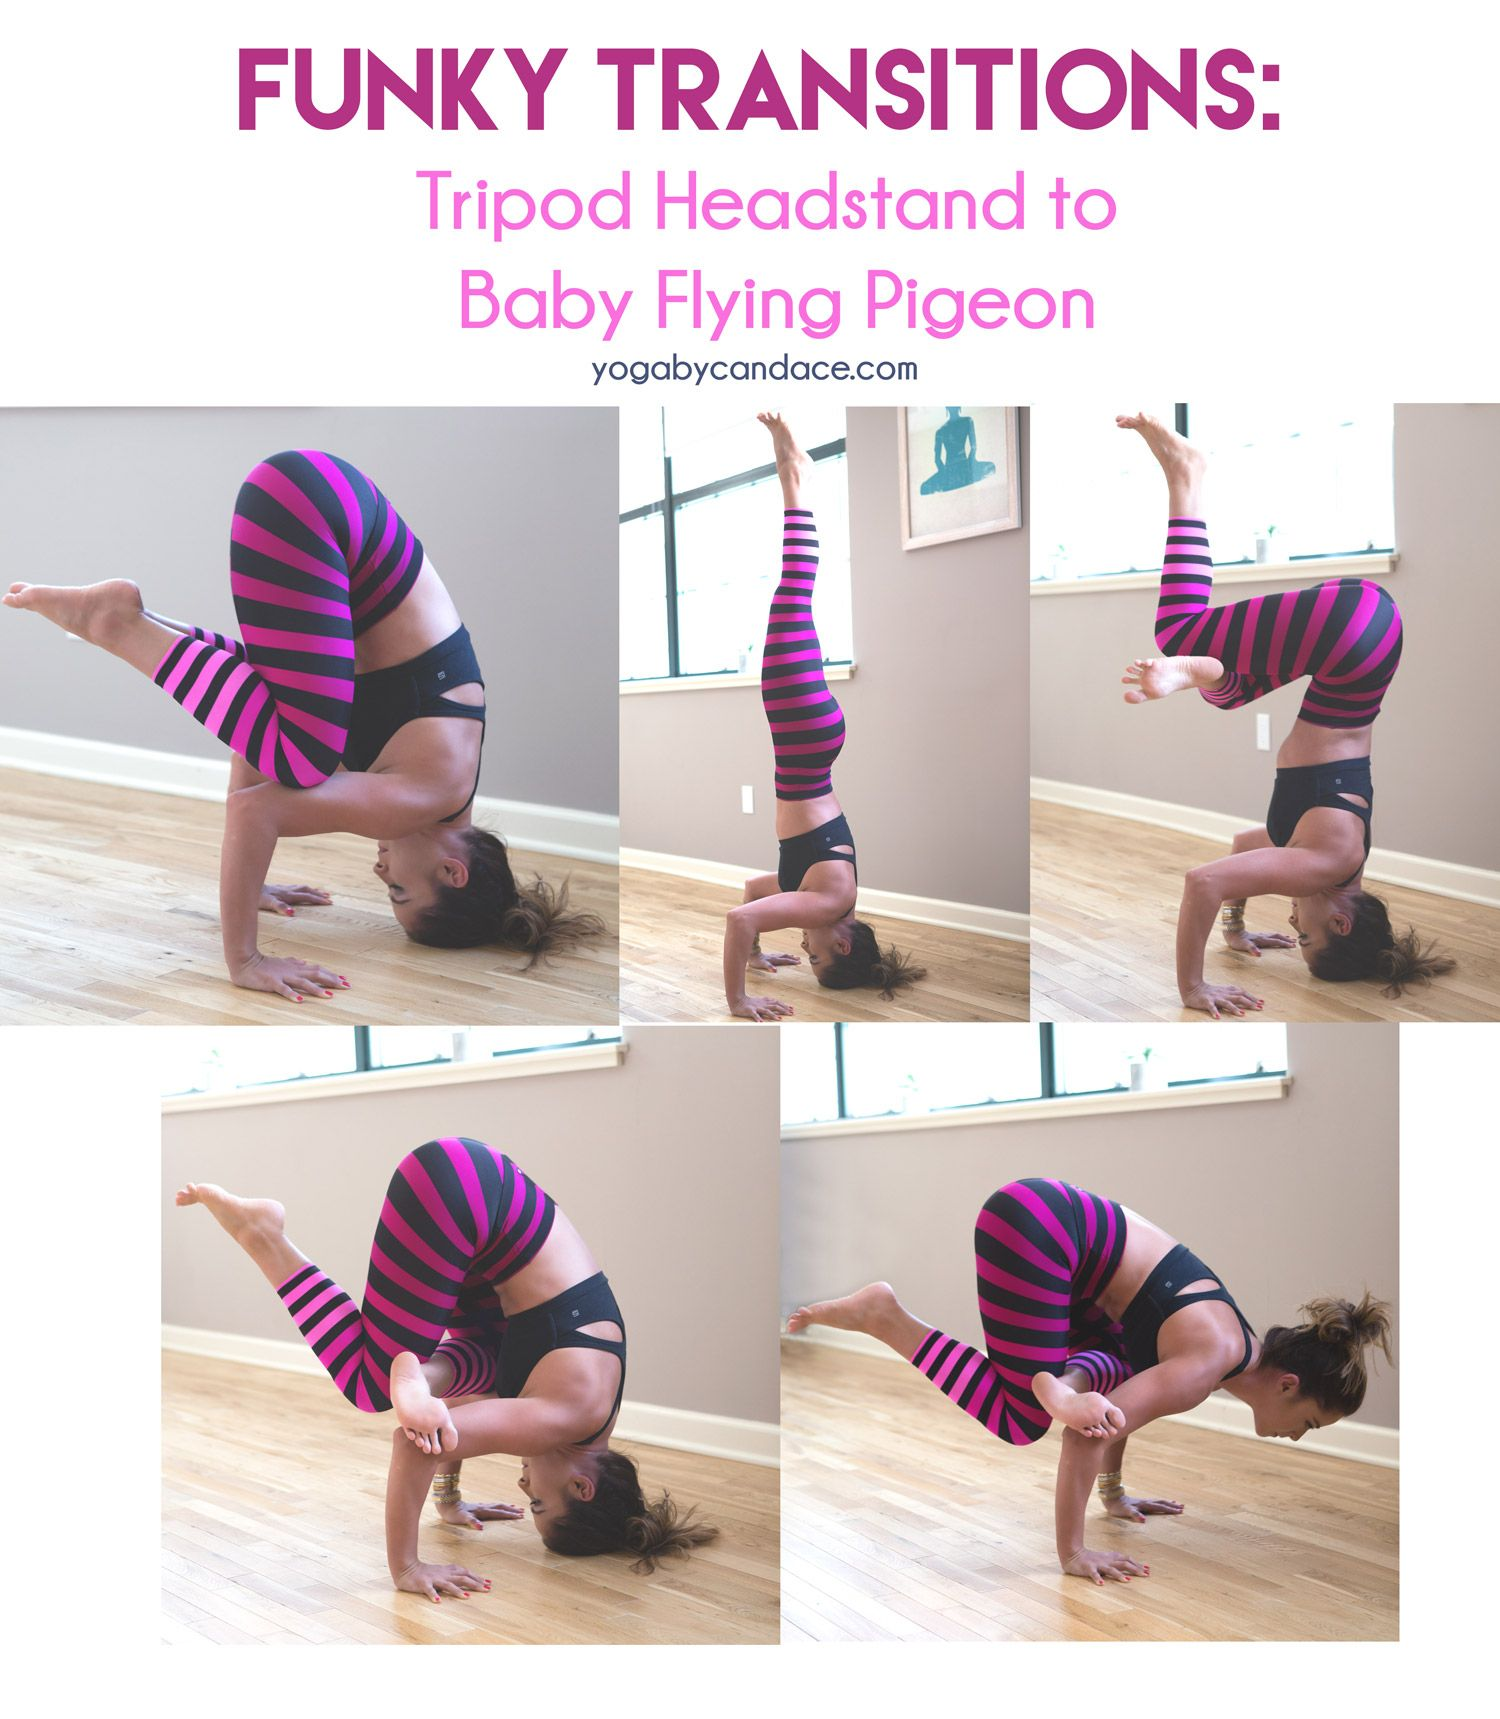 Funky Transitions Tripod Headstand To Baby Flying Pigeon Yogabycandace Advanced Yoga Yoga Help Headstand Yoga